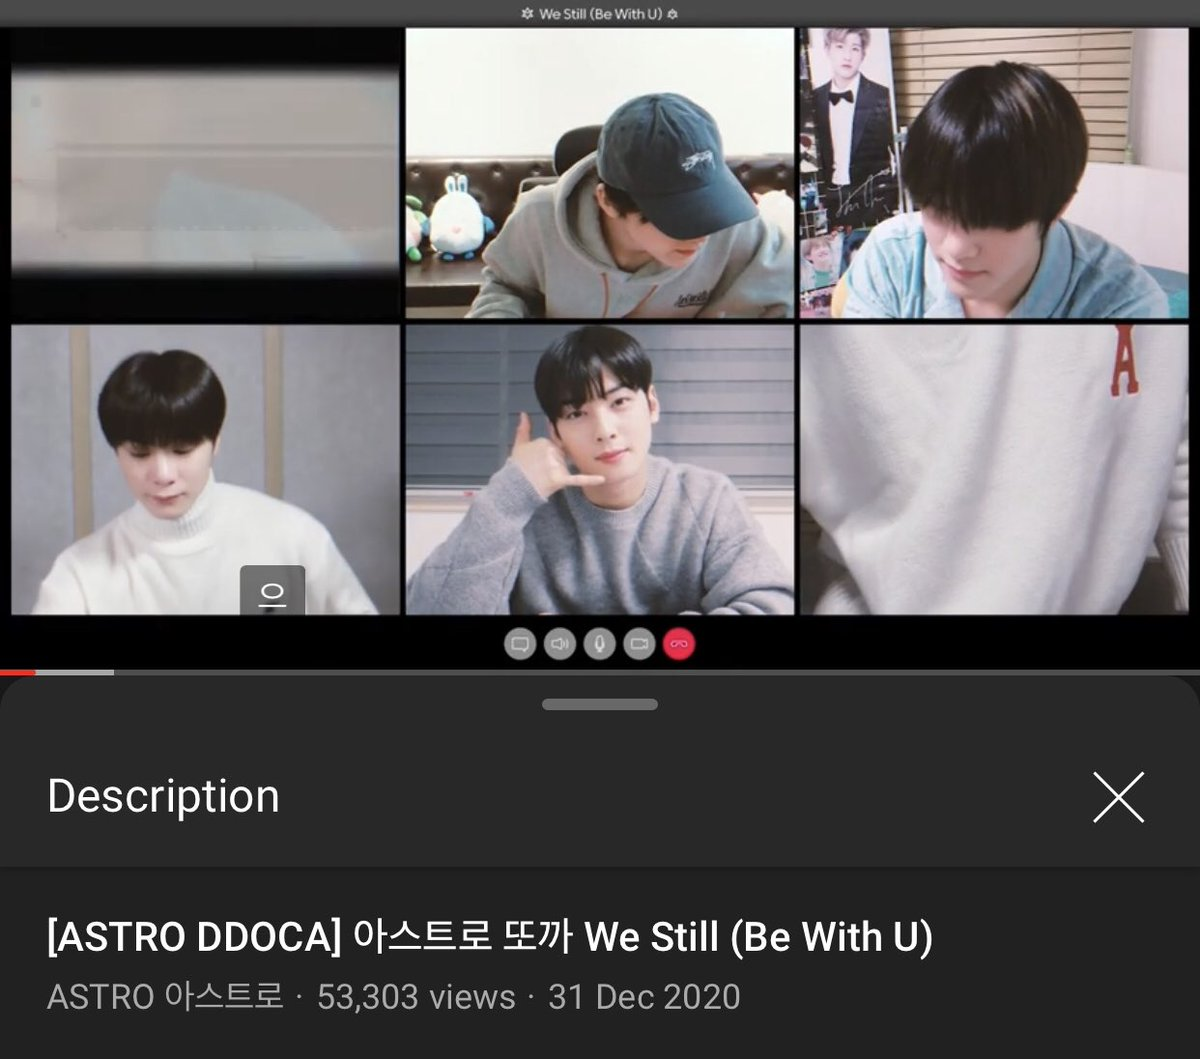 [📈] 201231 11:30 PM KST 'We Still (Be With U)' DDOCA Official Channel: 53,303 views (🔺4,211) 🔗youtu.be/zyk2KpV6avk Naver TV: 46,128 views (🔺2,889) 🔗naver.me/FVPwMoN9 [ #아스트로 #ASTRO_BeWithU @offclASTRO ]